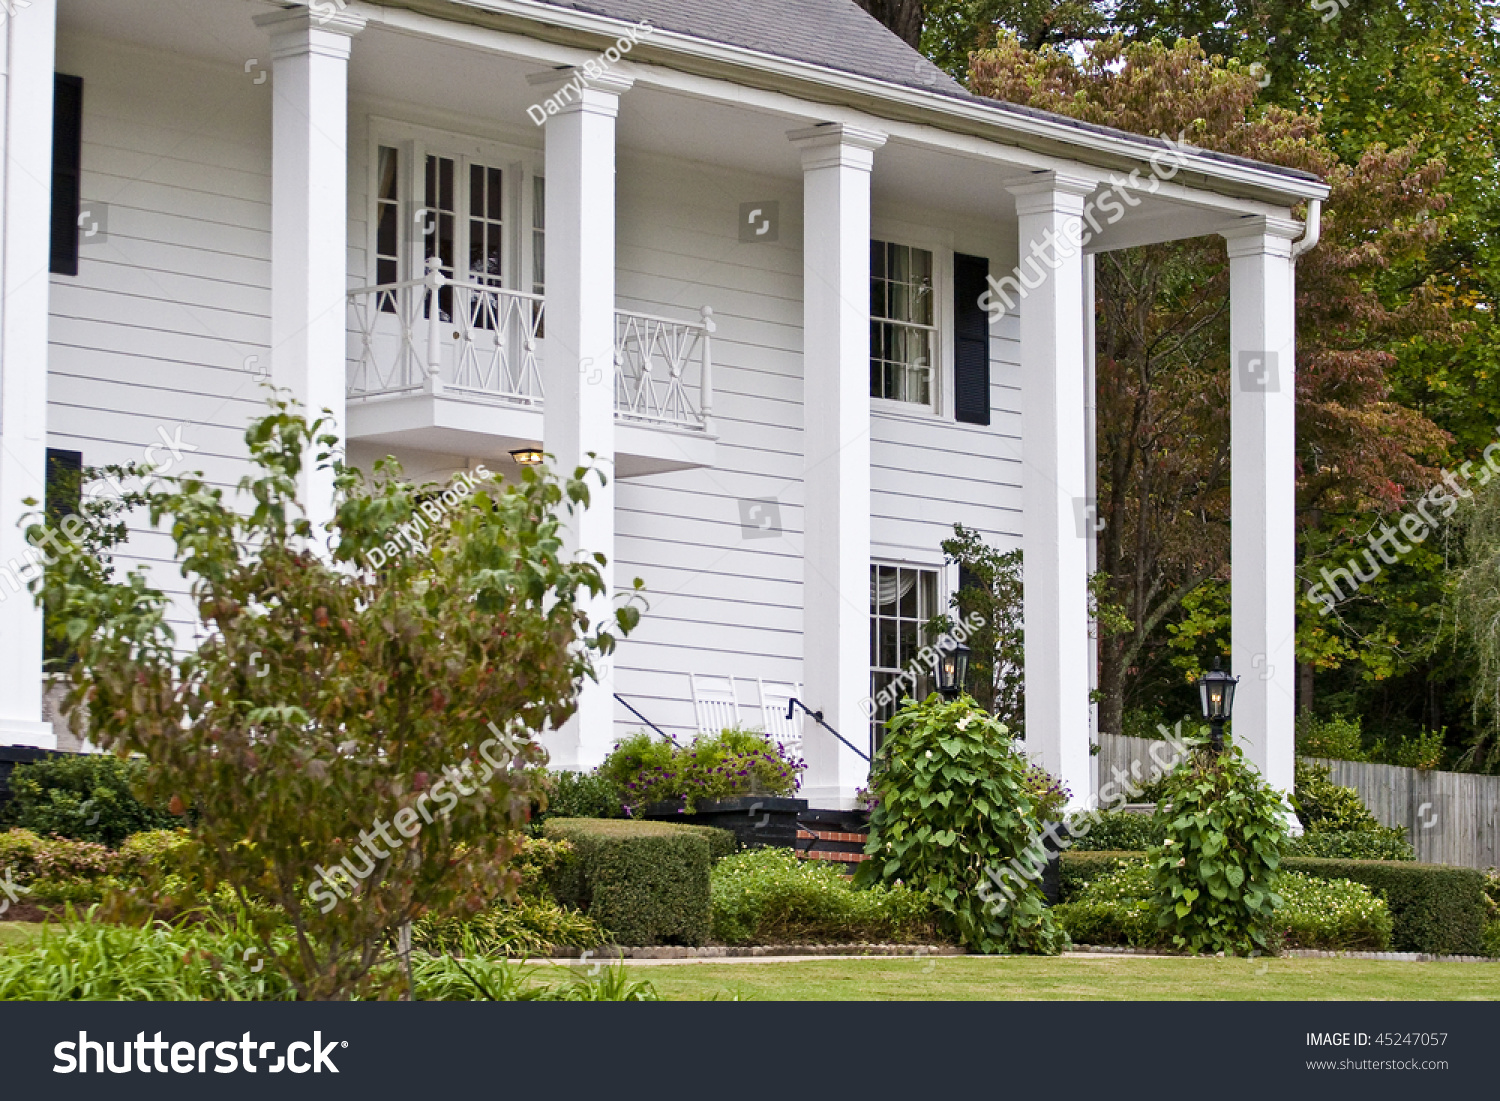 an old white siding farm house with columns on front porch